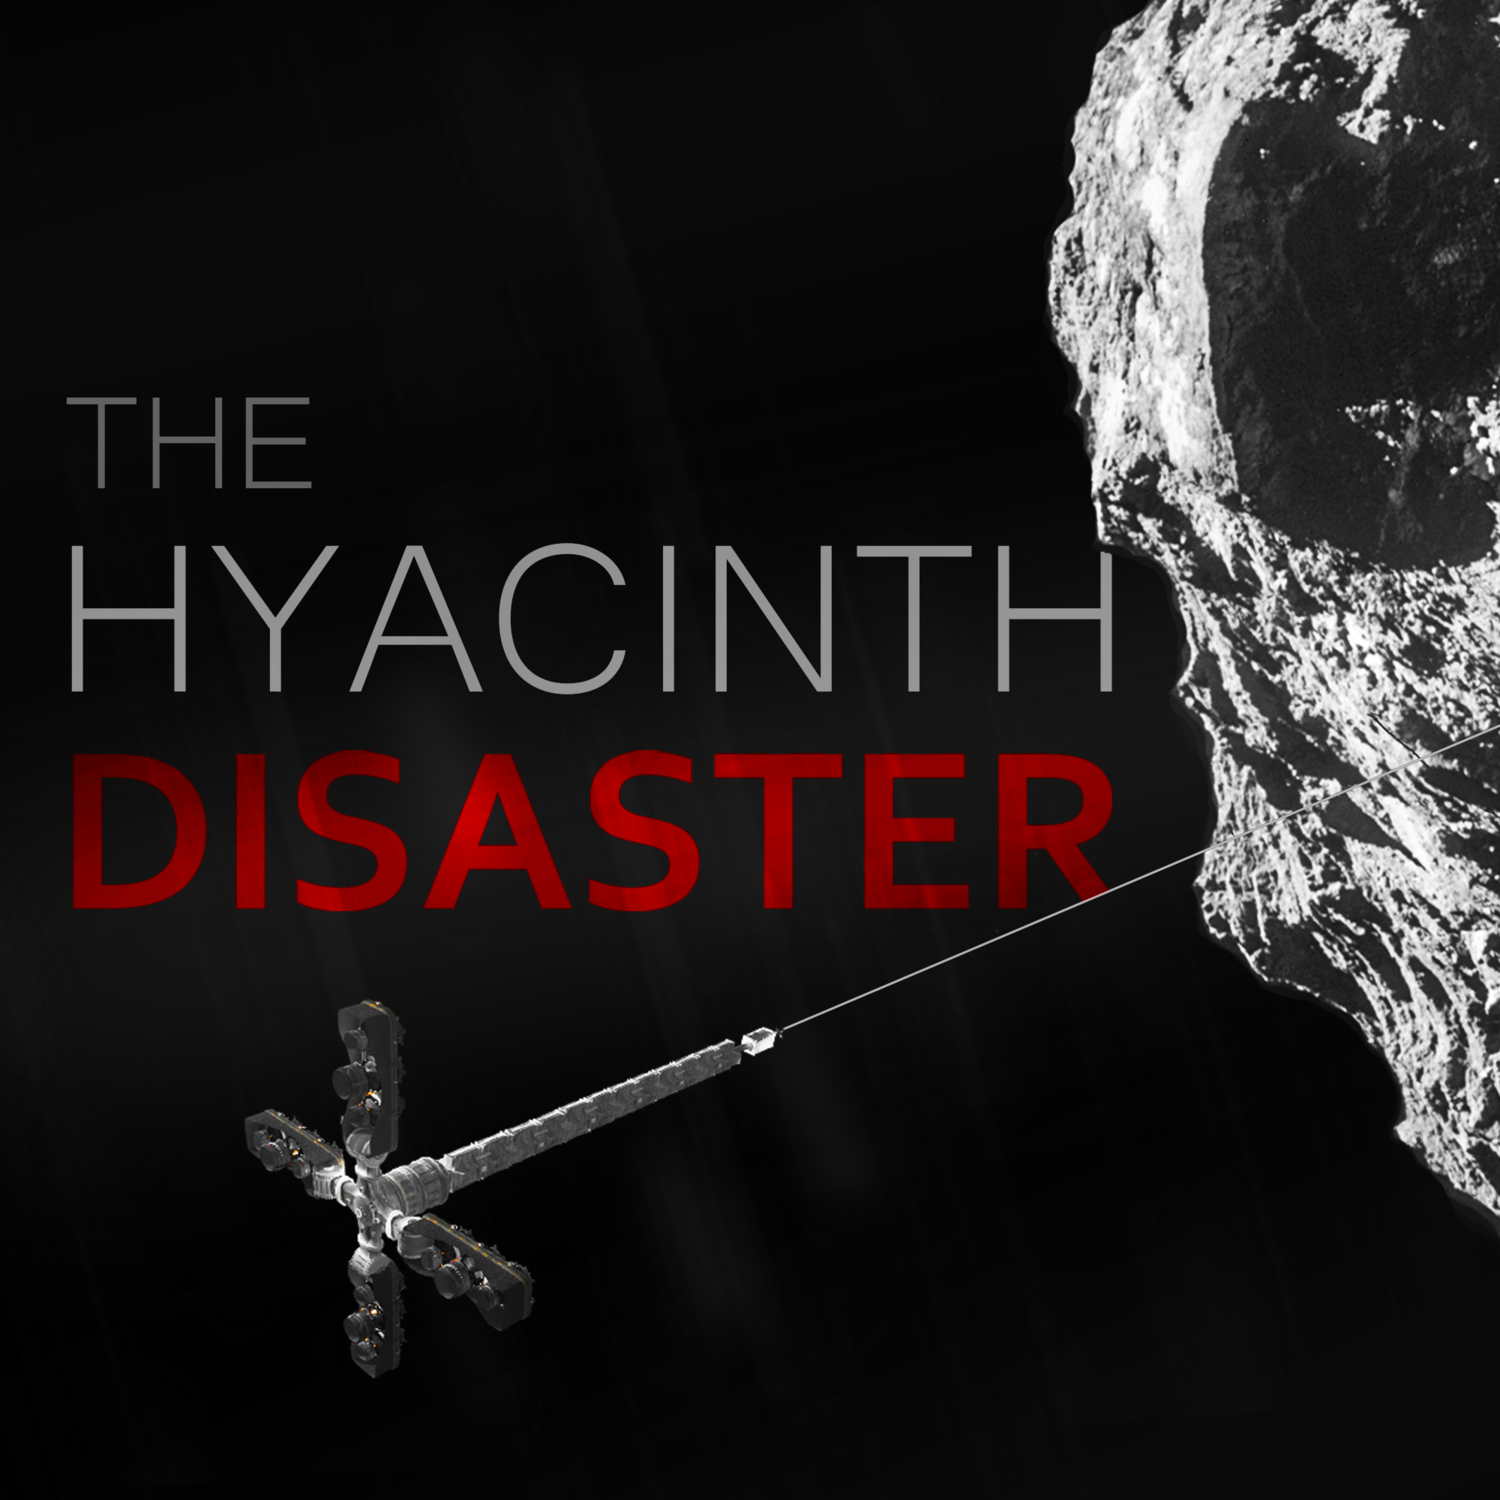 The Hyacinth Disaster